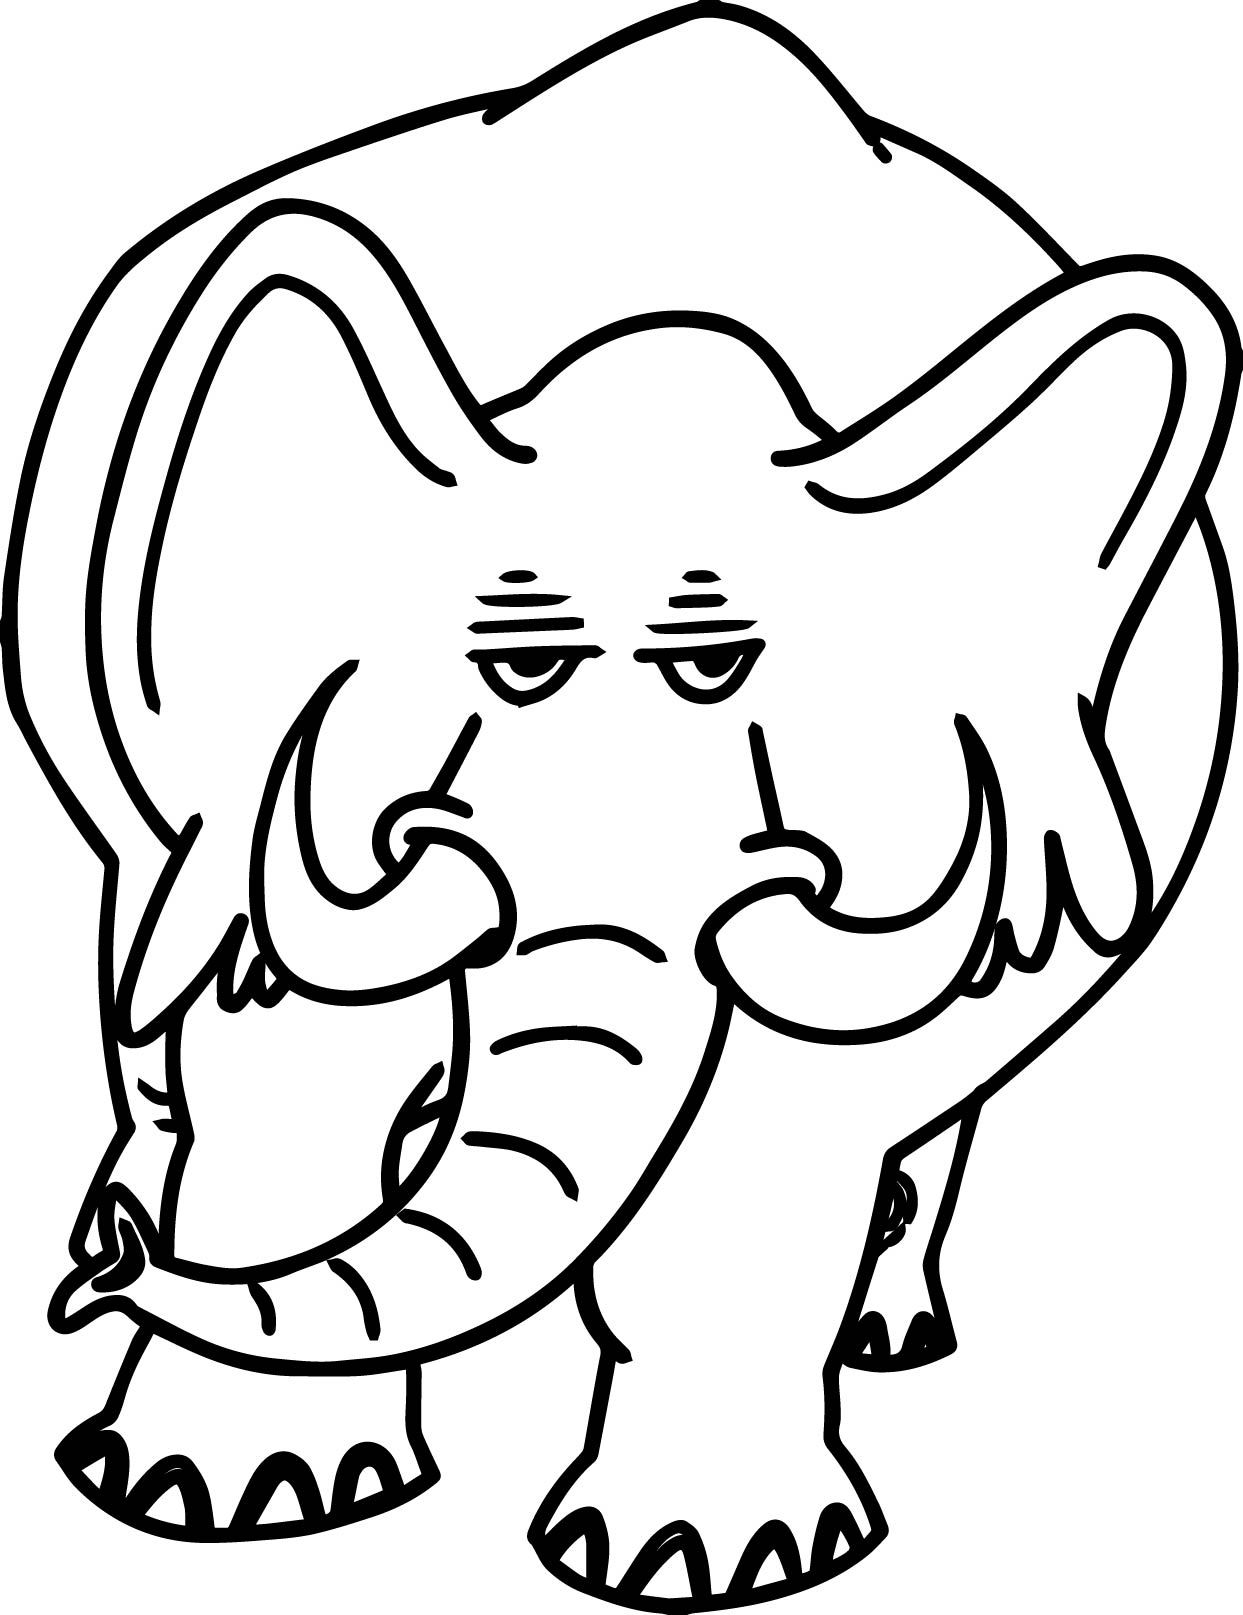 Awesome Angry Heavy Elephant Coloring Page